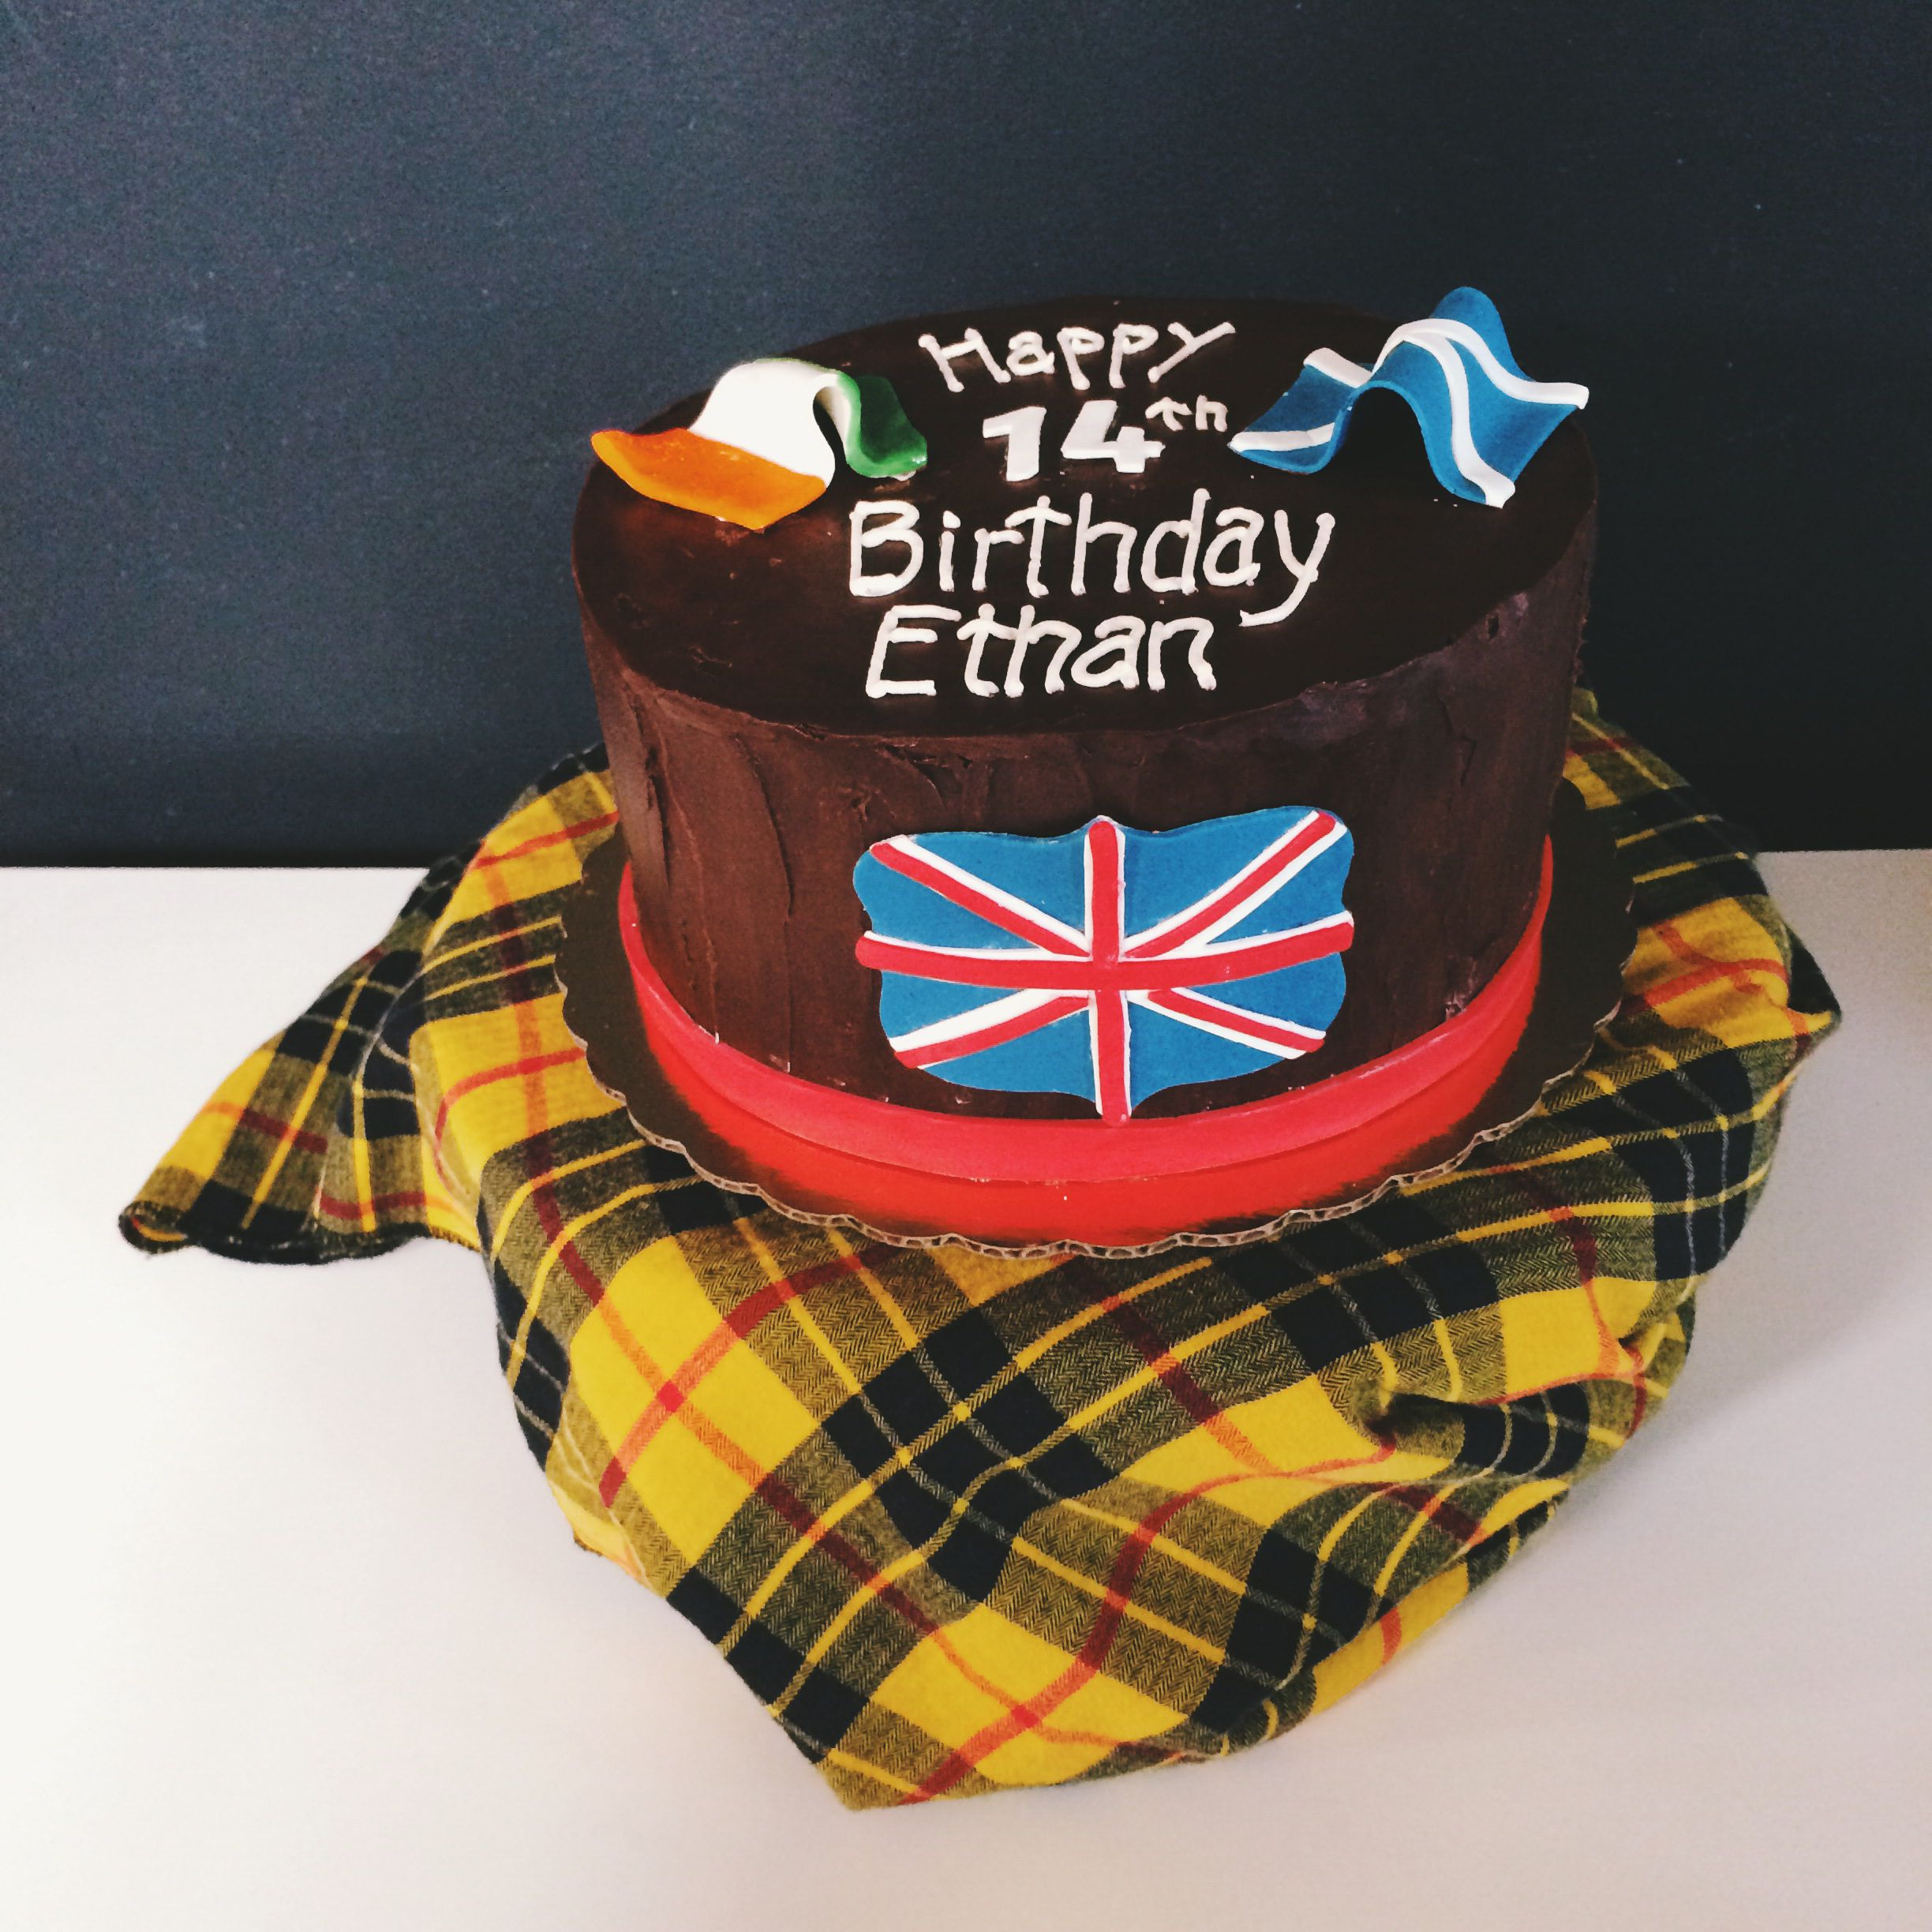 Birthday cake with flags of Ireland, Scotland and Great Britain